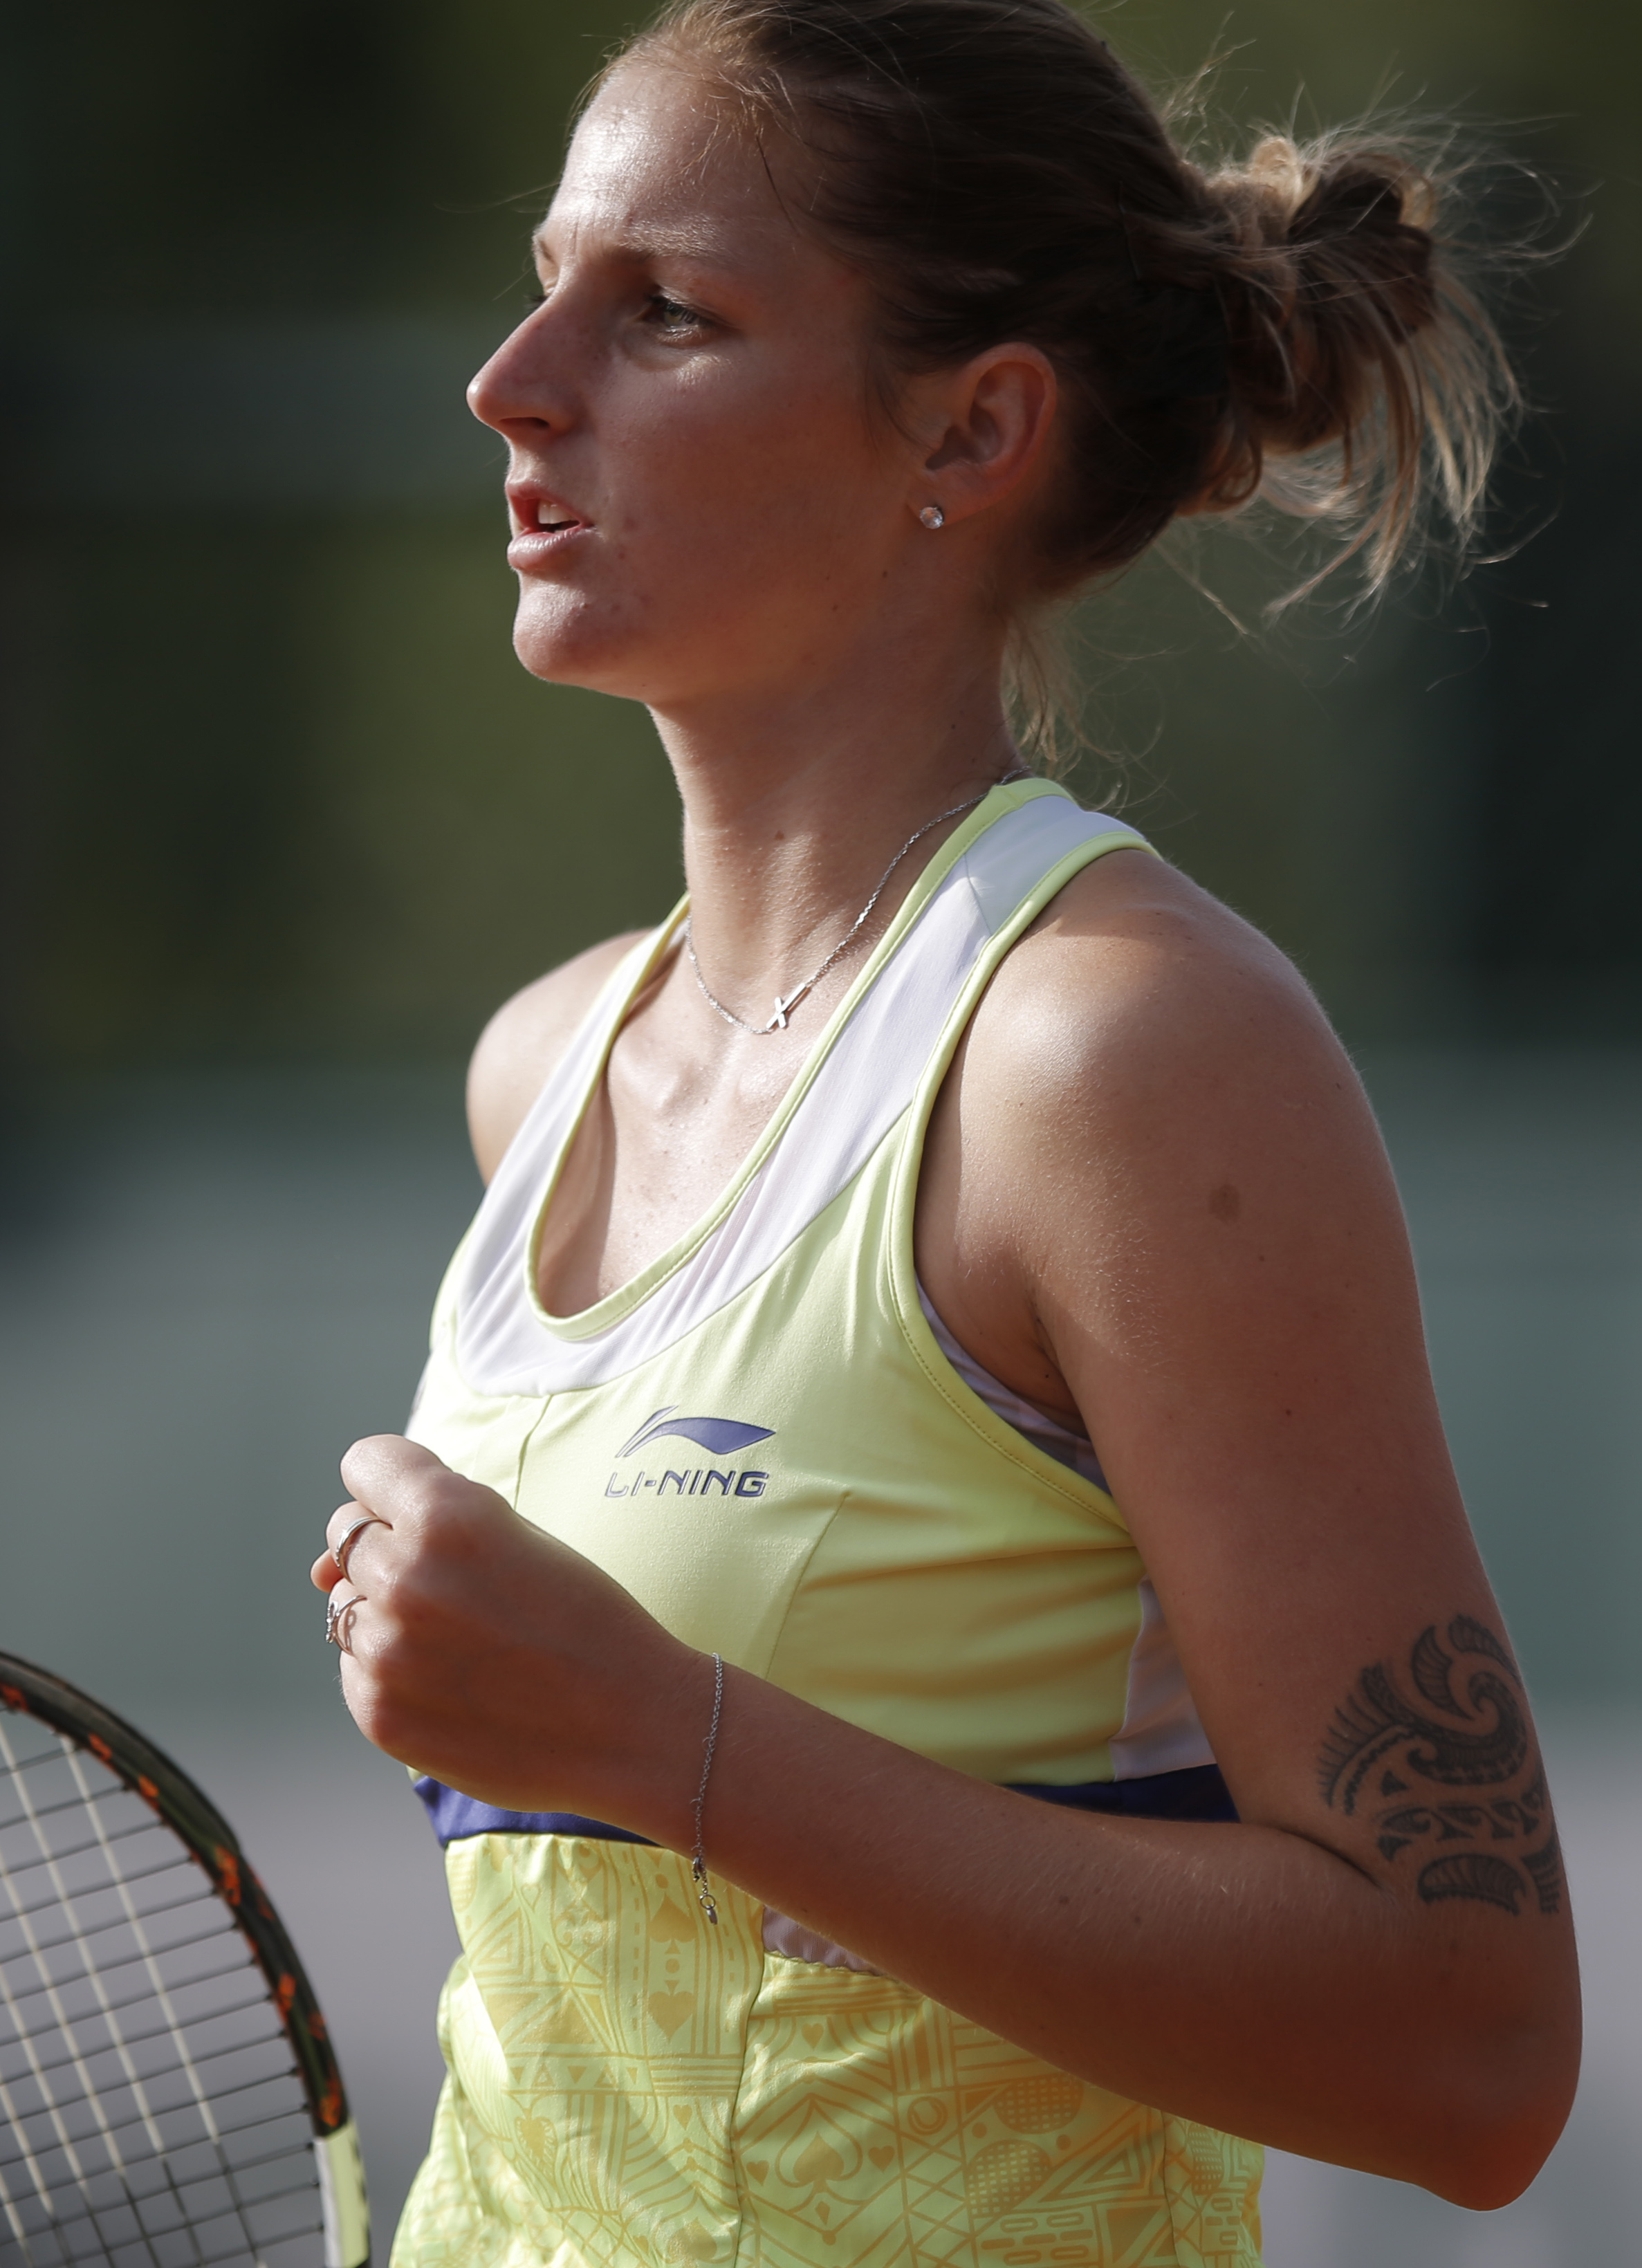 Karolina Pliskova of the Czech Republic, reacts as she plays China's Shuai Zhang during their first round match of the French Open tennis tournament at the Roland Garros stadium, Monday, May 25, 2015 in Paris,  (AP Photo/Francois Mori)